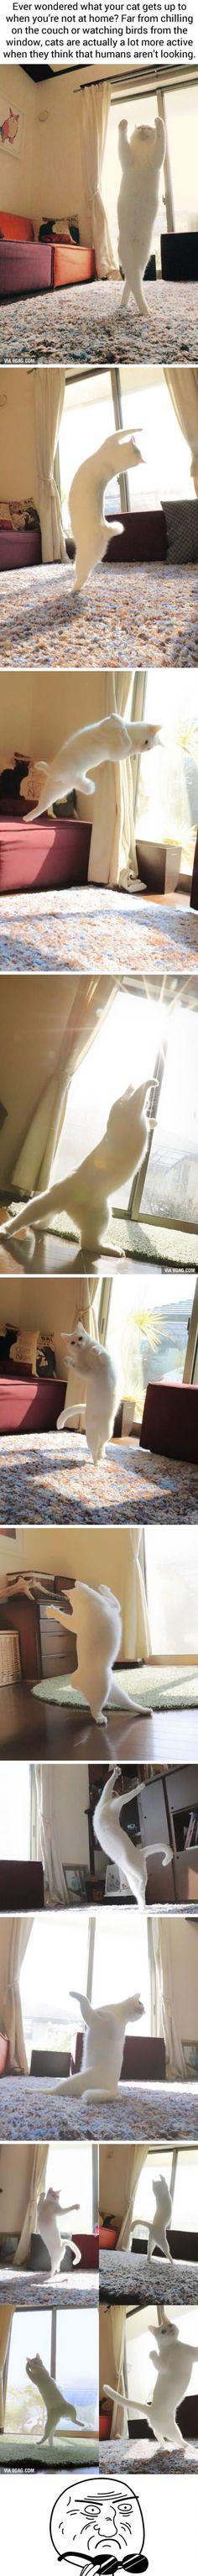 Ballet Cat Dances Like Nobody's Watching (@ccchisa76)<<THIS CAT GOT MORE SKILL THEN ME (that's not saying much though)